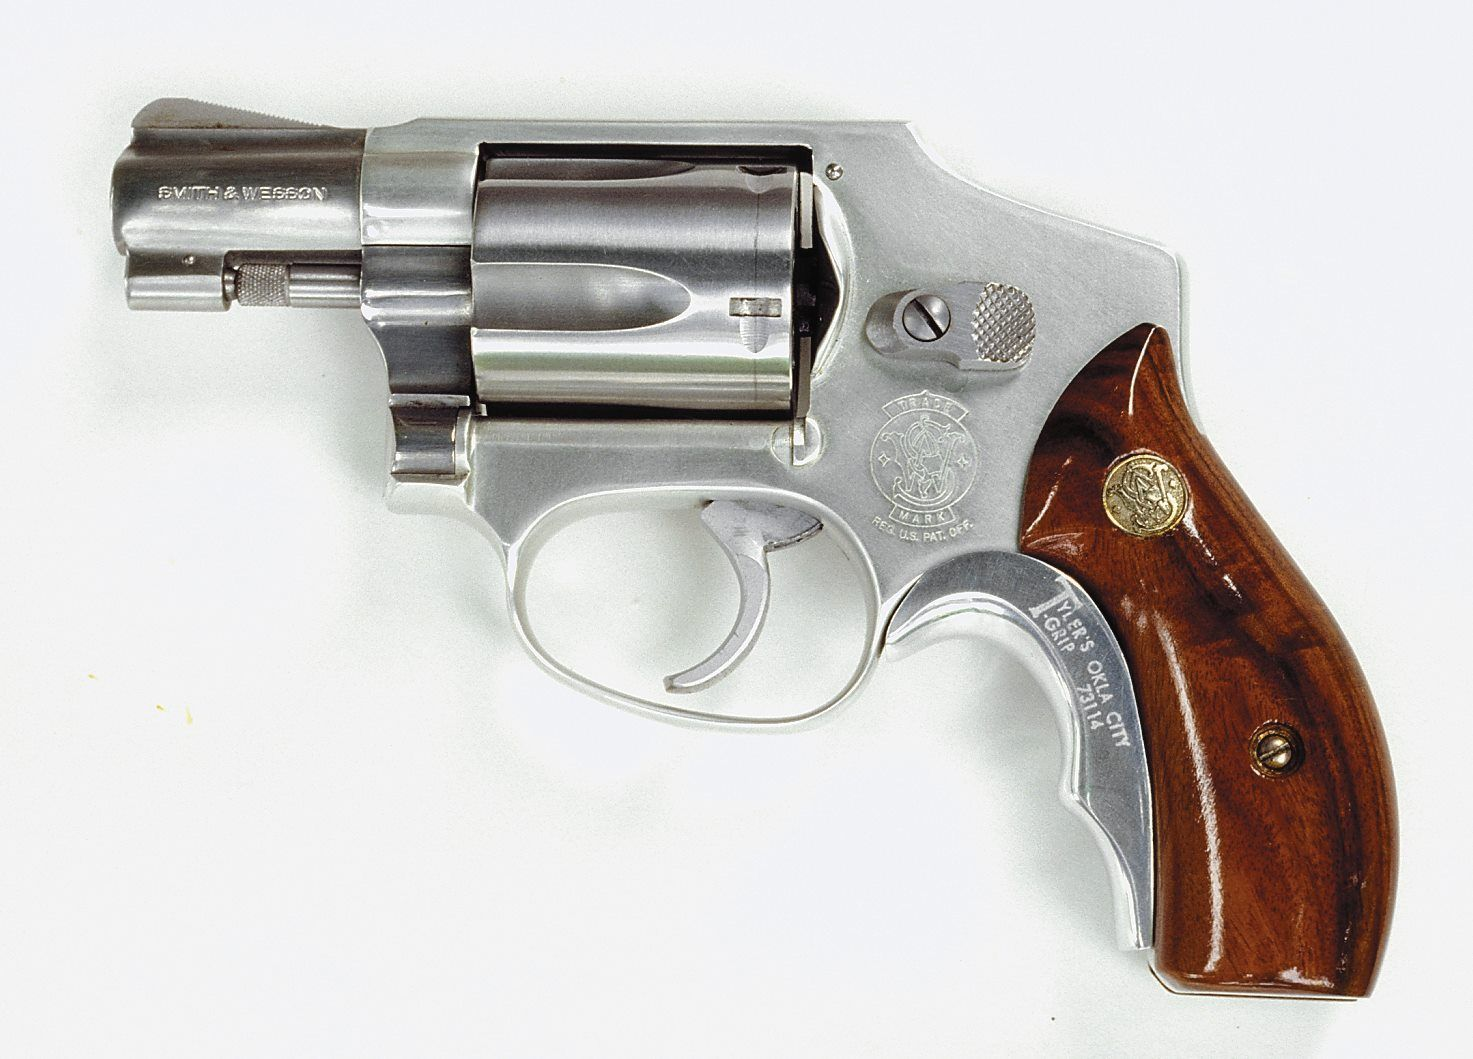 the Smith & Wesson Corp. model 640. Heavier than lighter Airweight ...